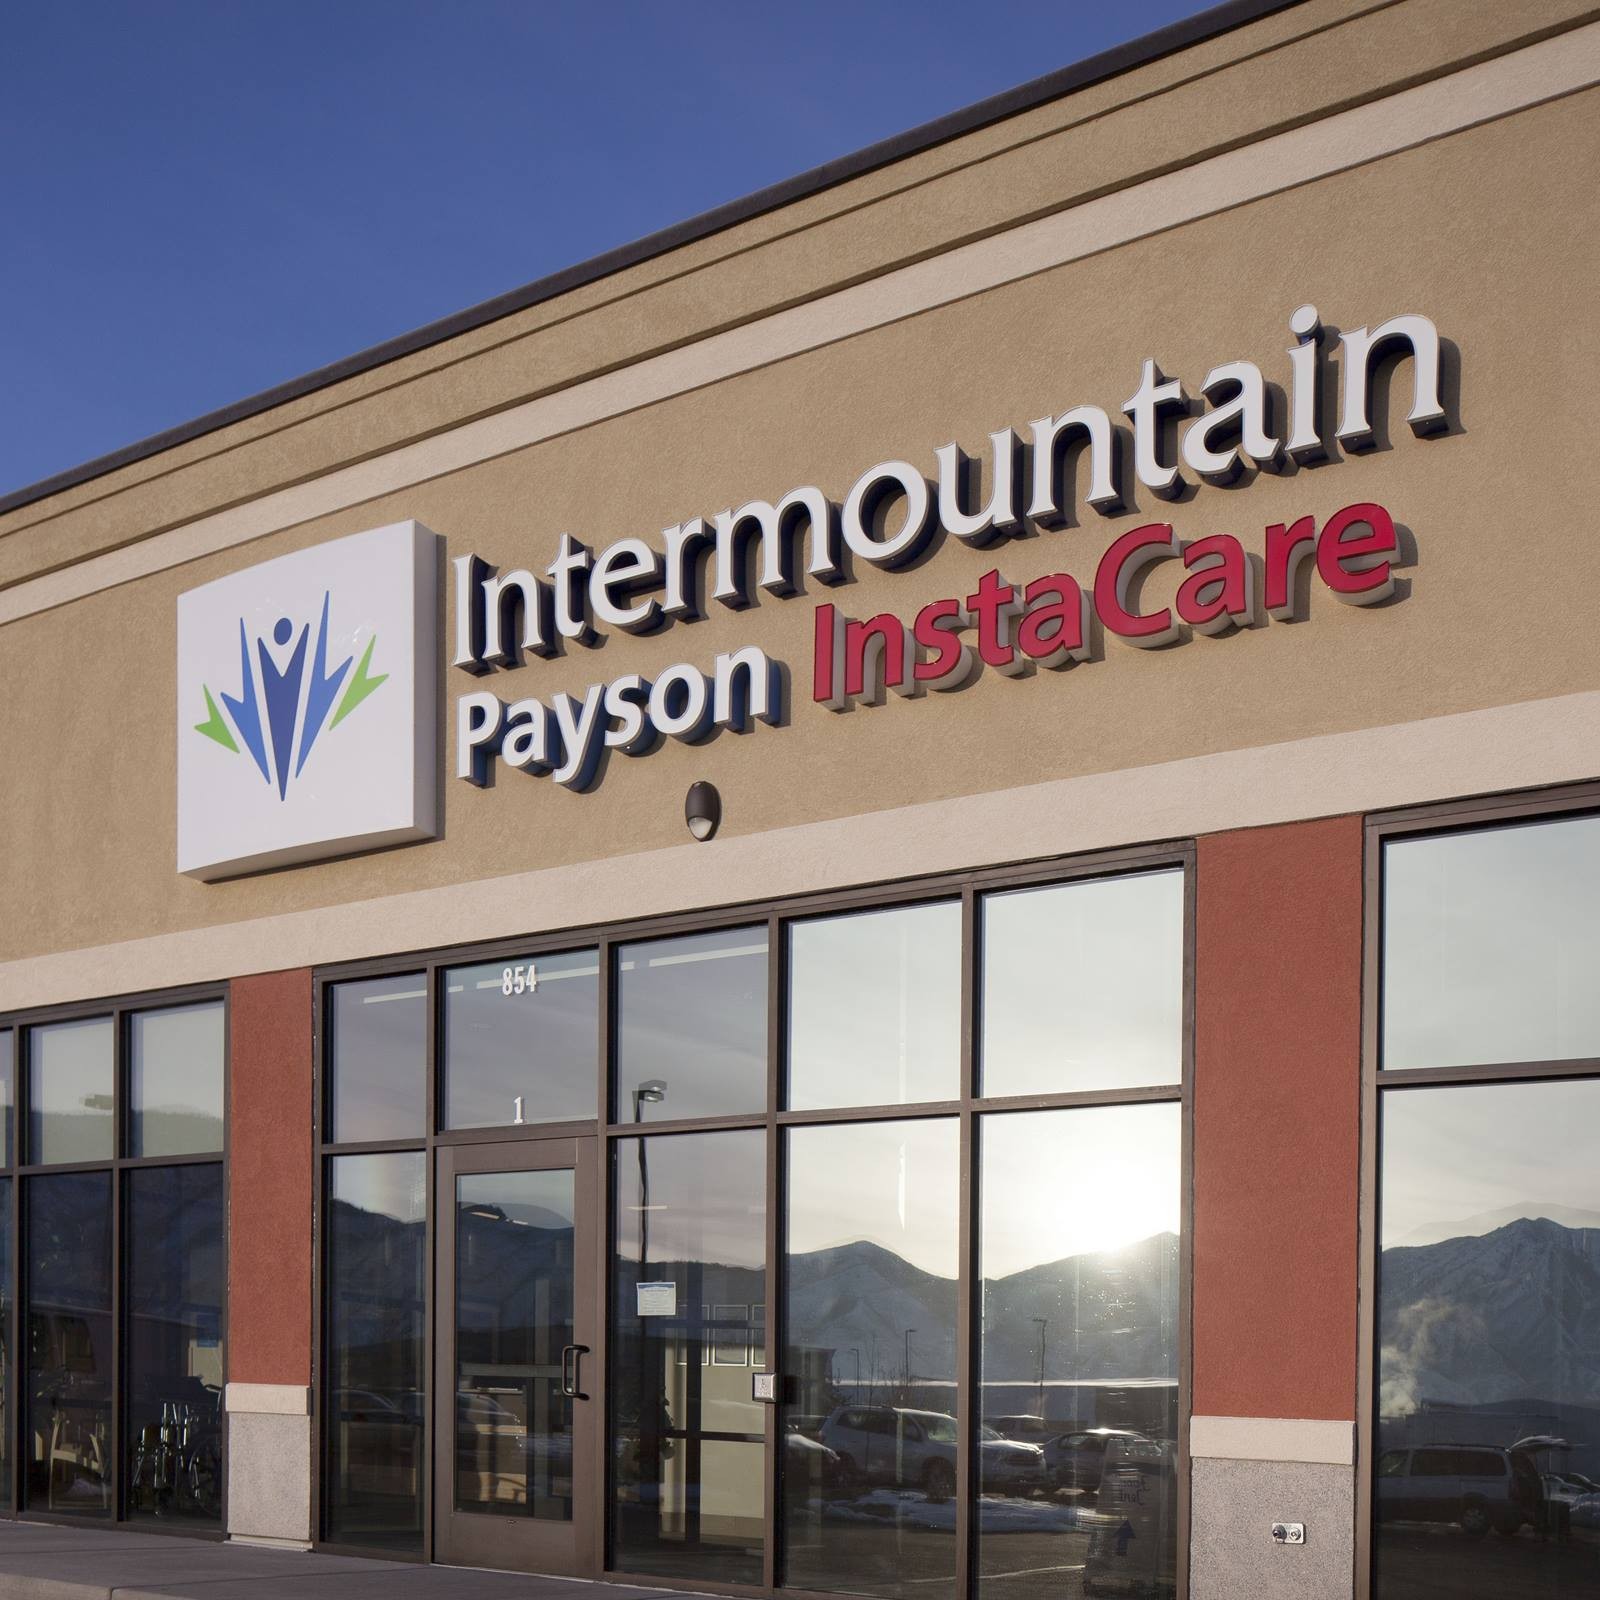 payson chat rooms We still don't have the full story of the disturbing sexting episodes at the payson high  they had to sneak out of the house — now they can hook up in chat rooms.